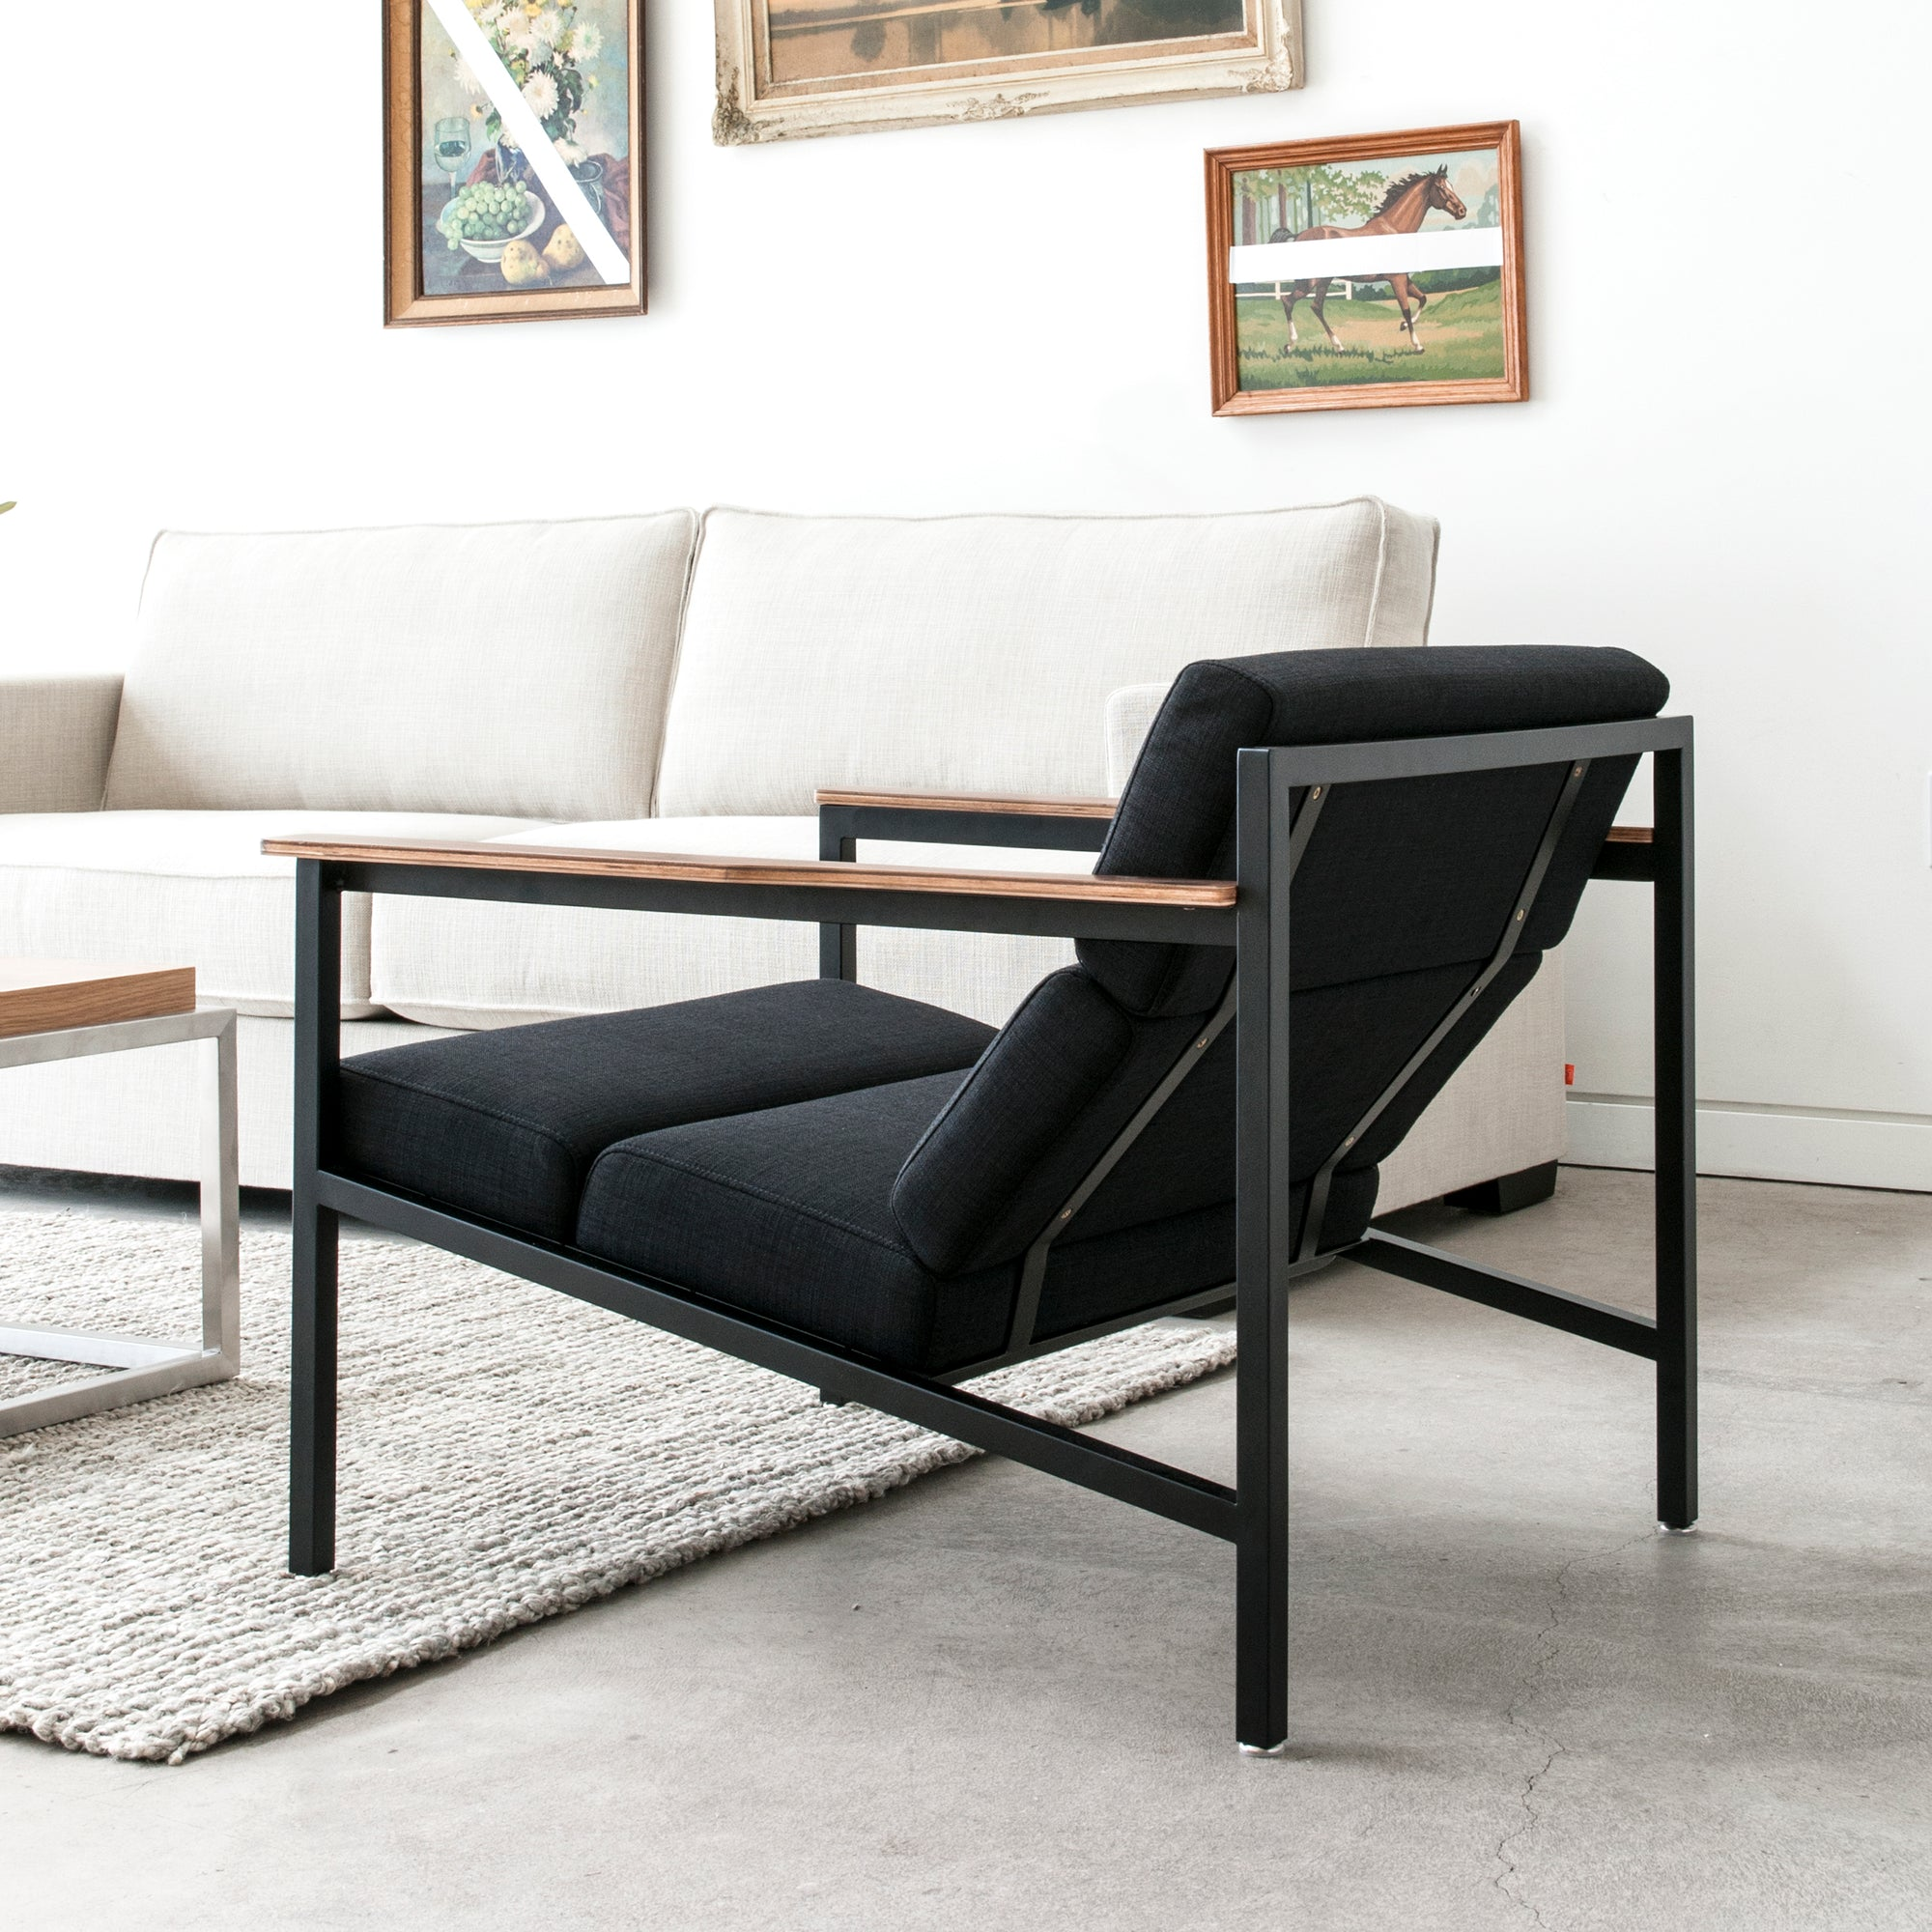 Gus* Modern Halifax Chair - Rug & Weave